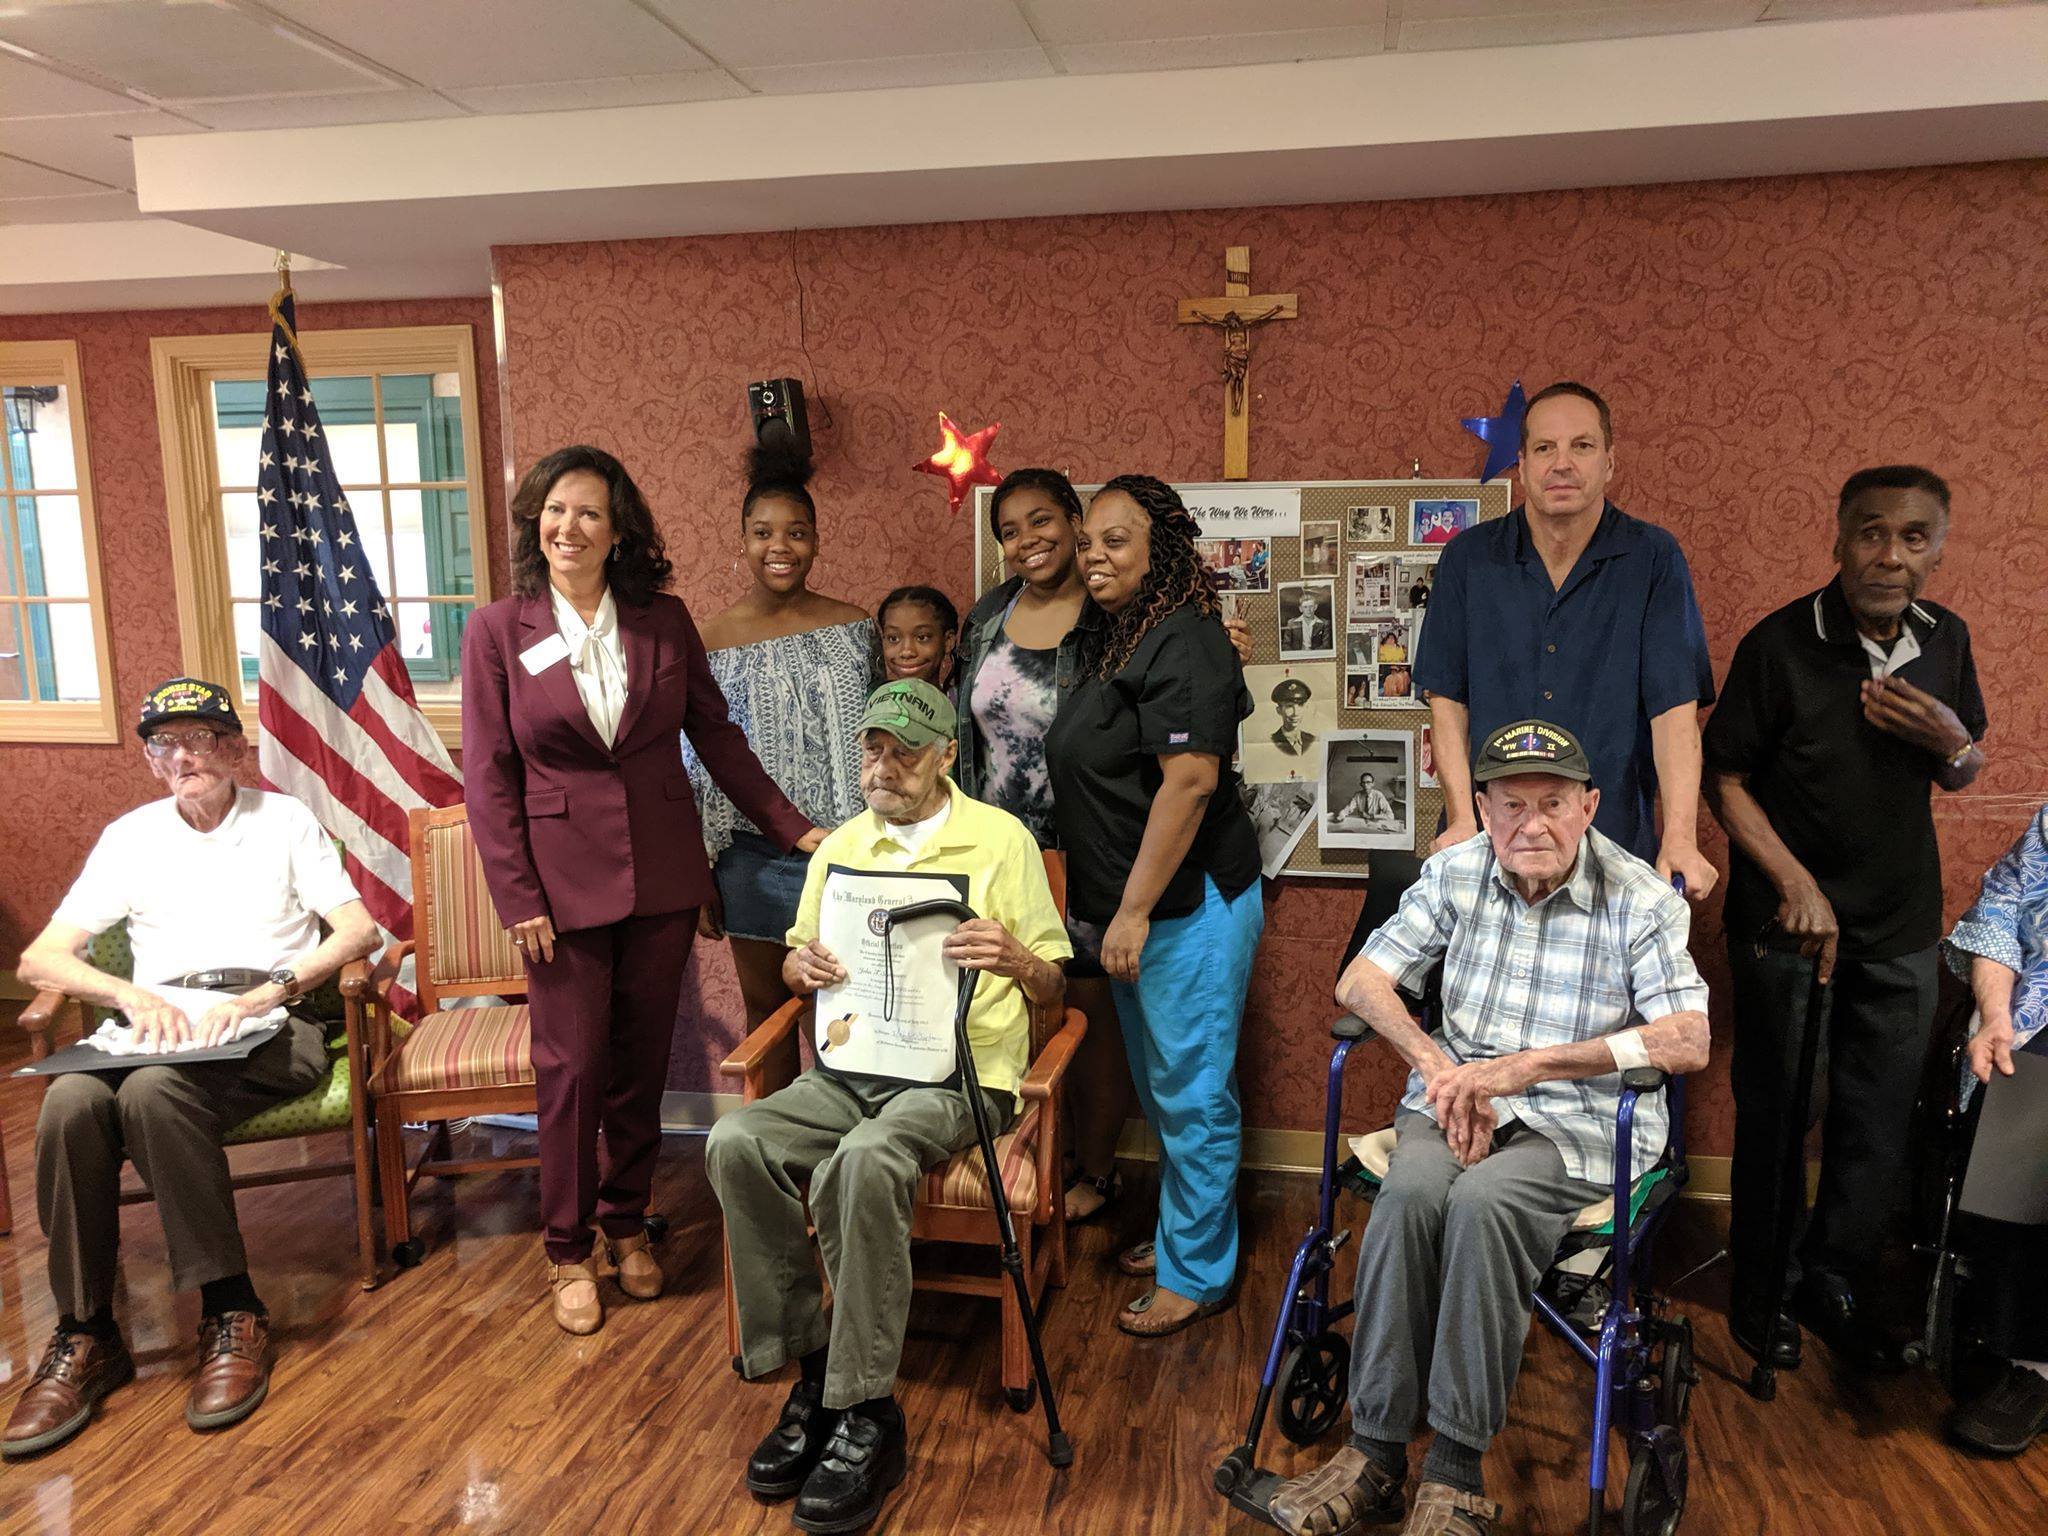 - Yesterday I had the honor of presenting Citations to 6 WWII veterans at Stella Maris Senior Center. The courage and selflessness of their generation is inspiring and reminds us to never forget their sacrifices and the sacrifices of those serving in our military today. It is our duty to support their physical and emotional needs when they come home and care for their families when they do not. We will feature a list of individuals and their service on our website soon.